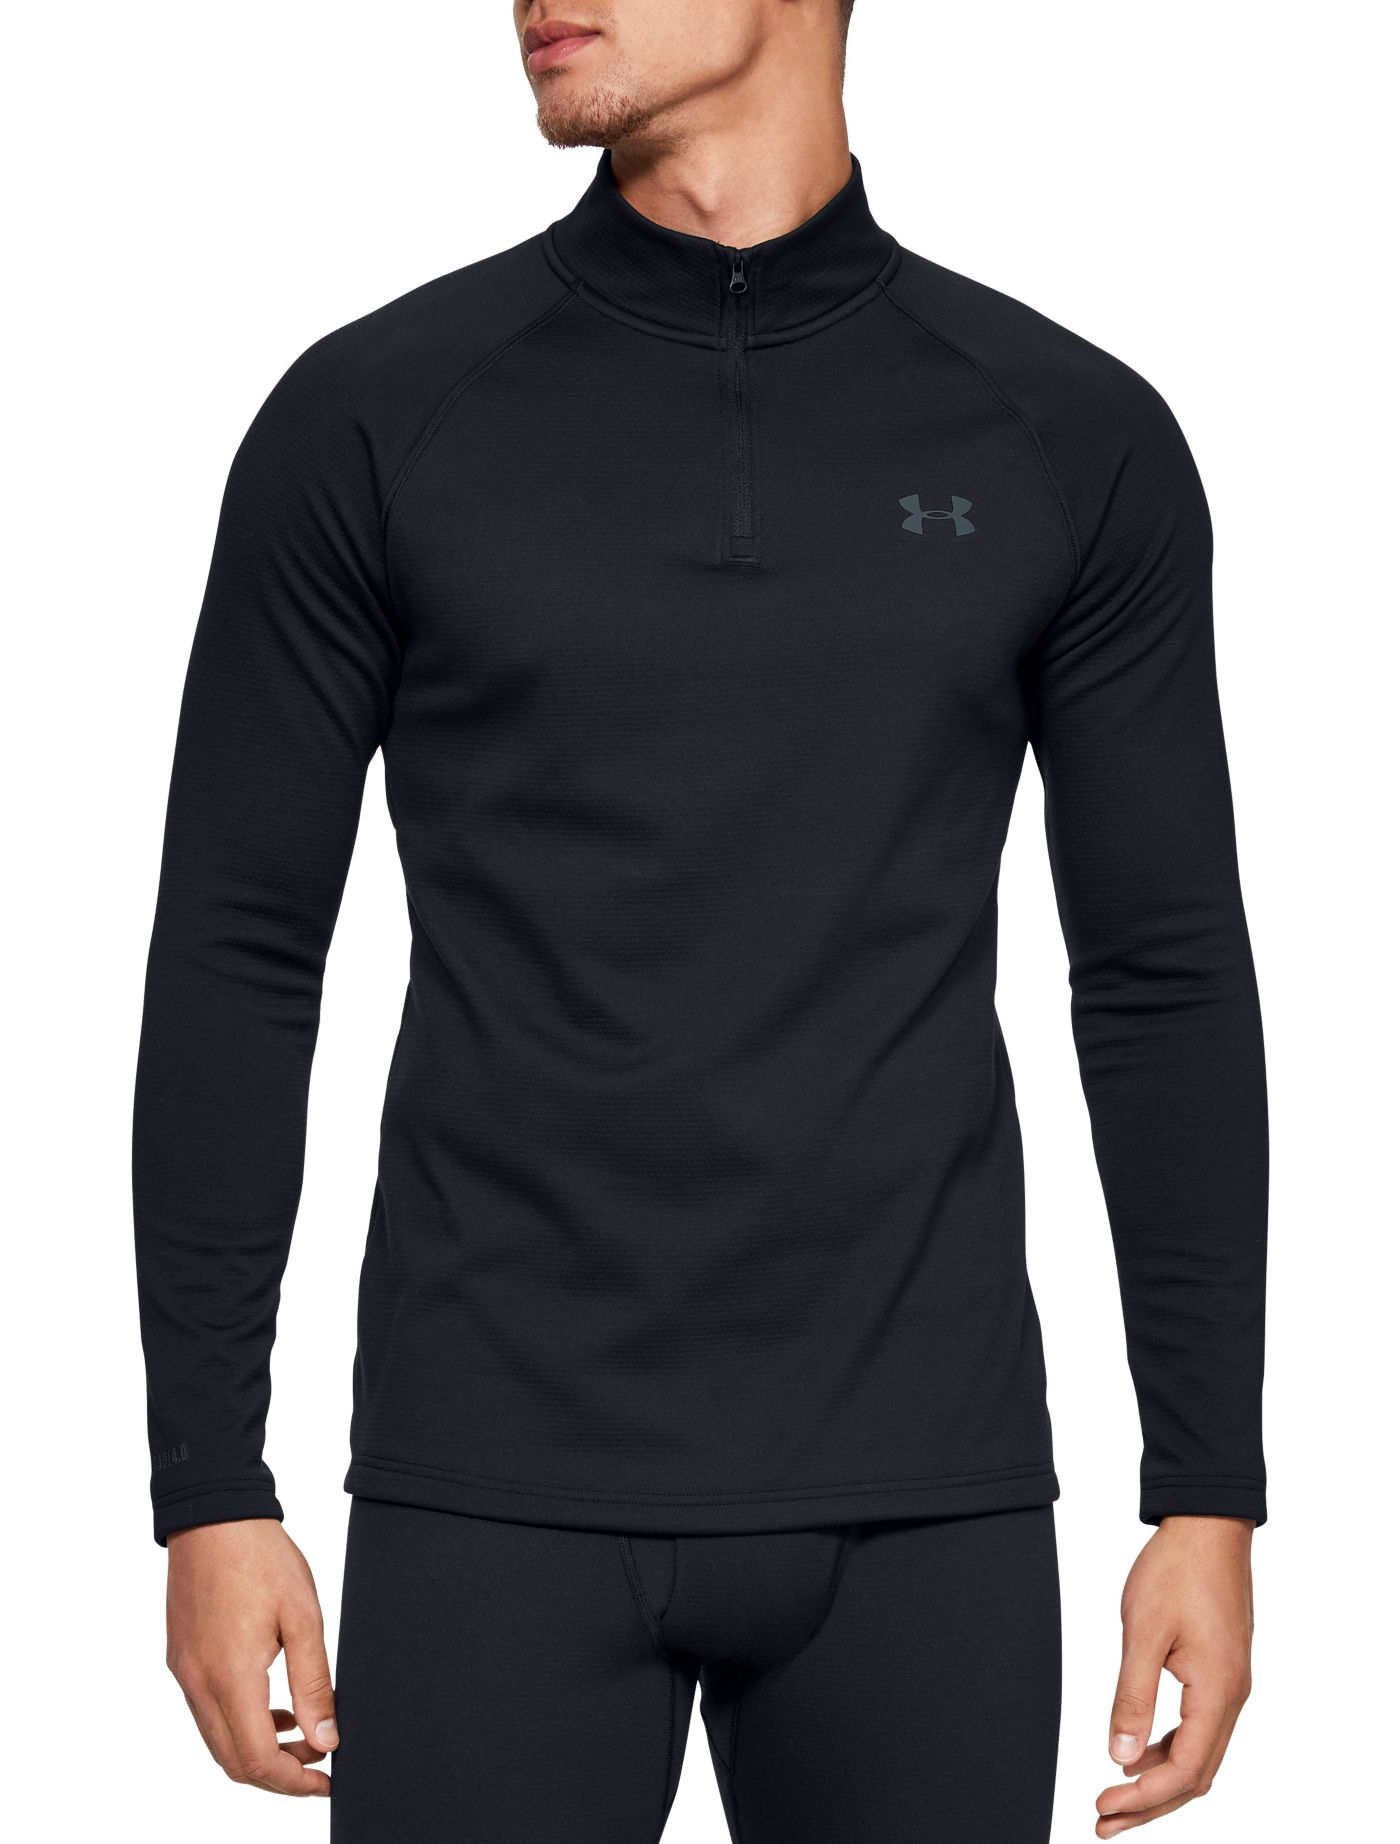 Under Armour Men's Packaged Base 4.0 1/4 Zip Baselayer (Regular and Big & Tall)